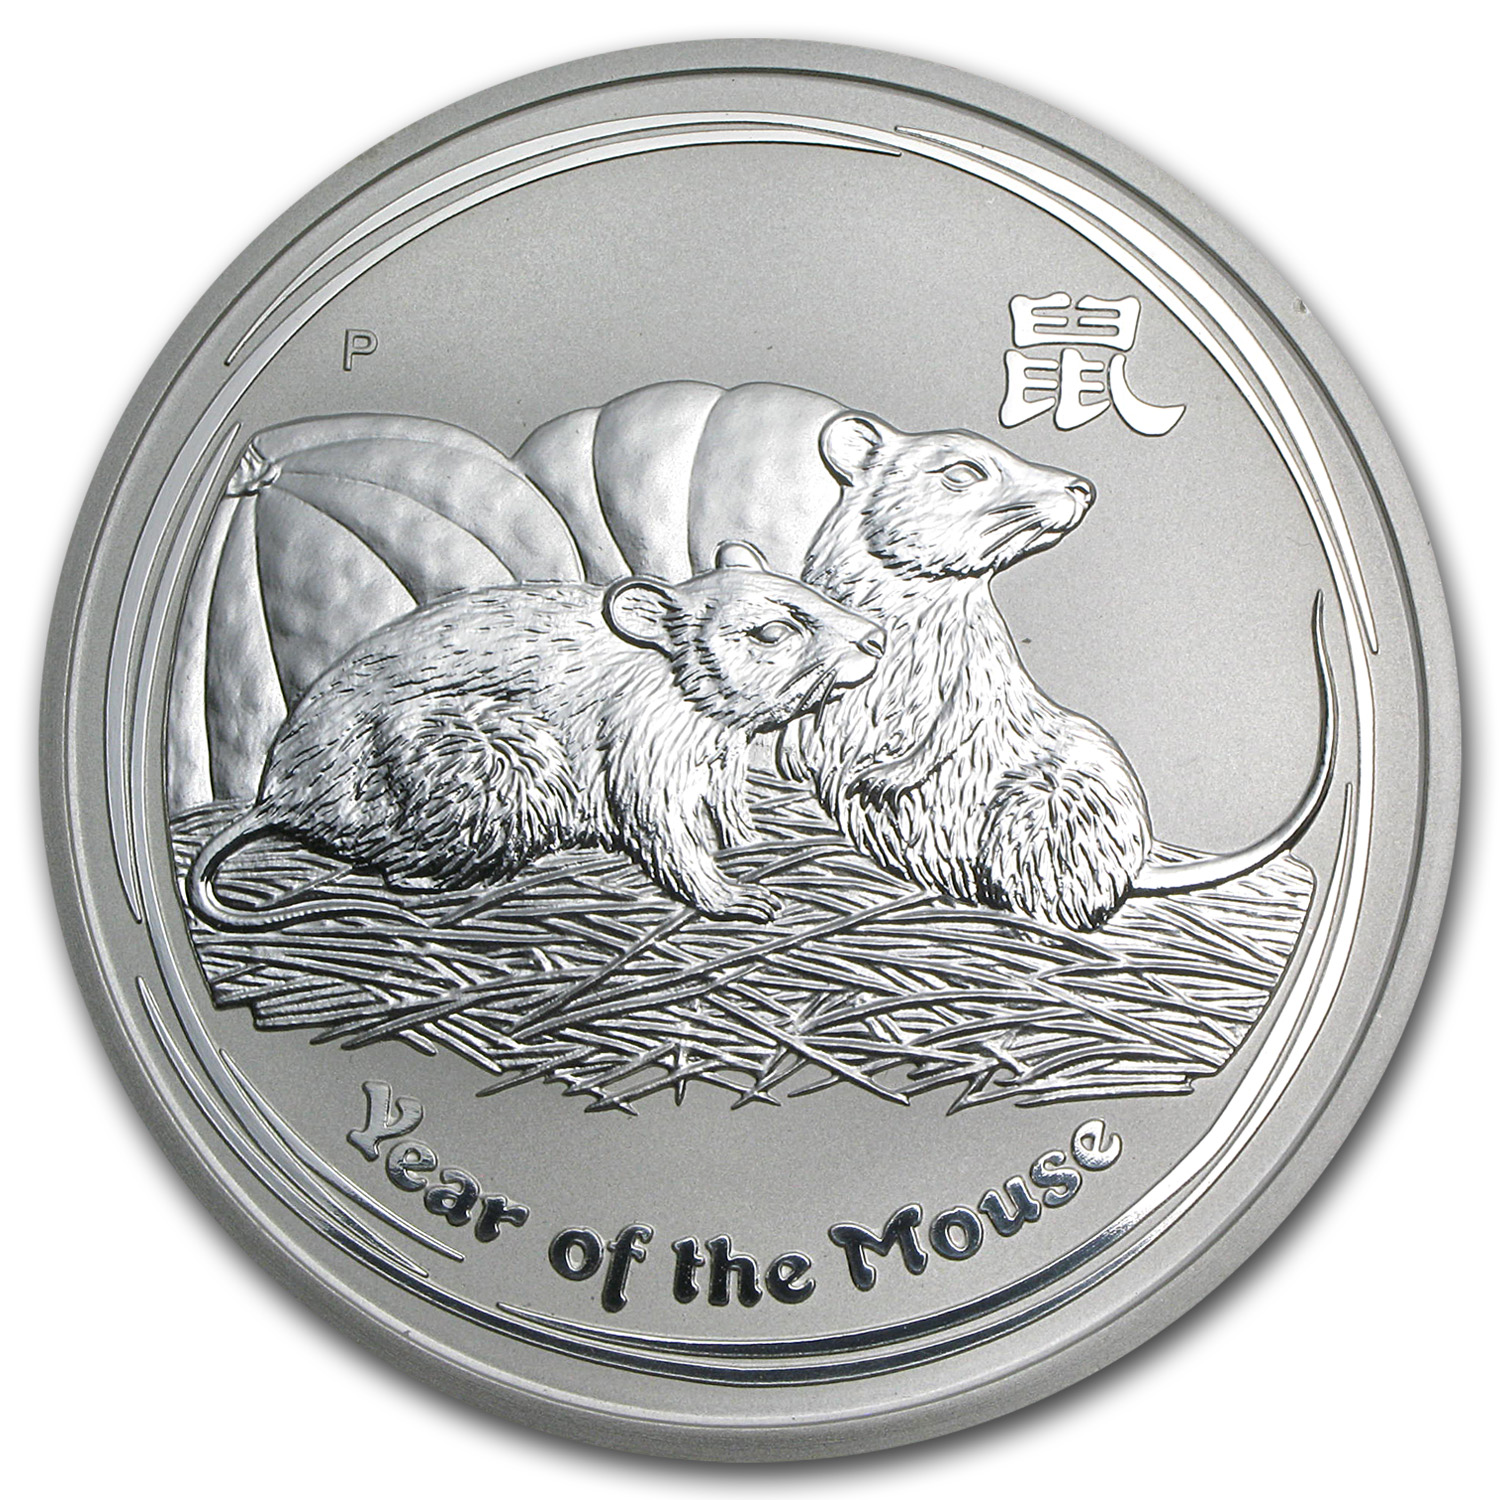 2008 5 oz Silver Australian Year of the Mouse Coin (Series II)